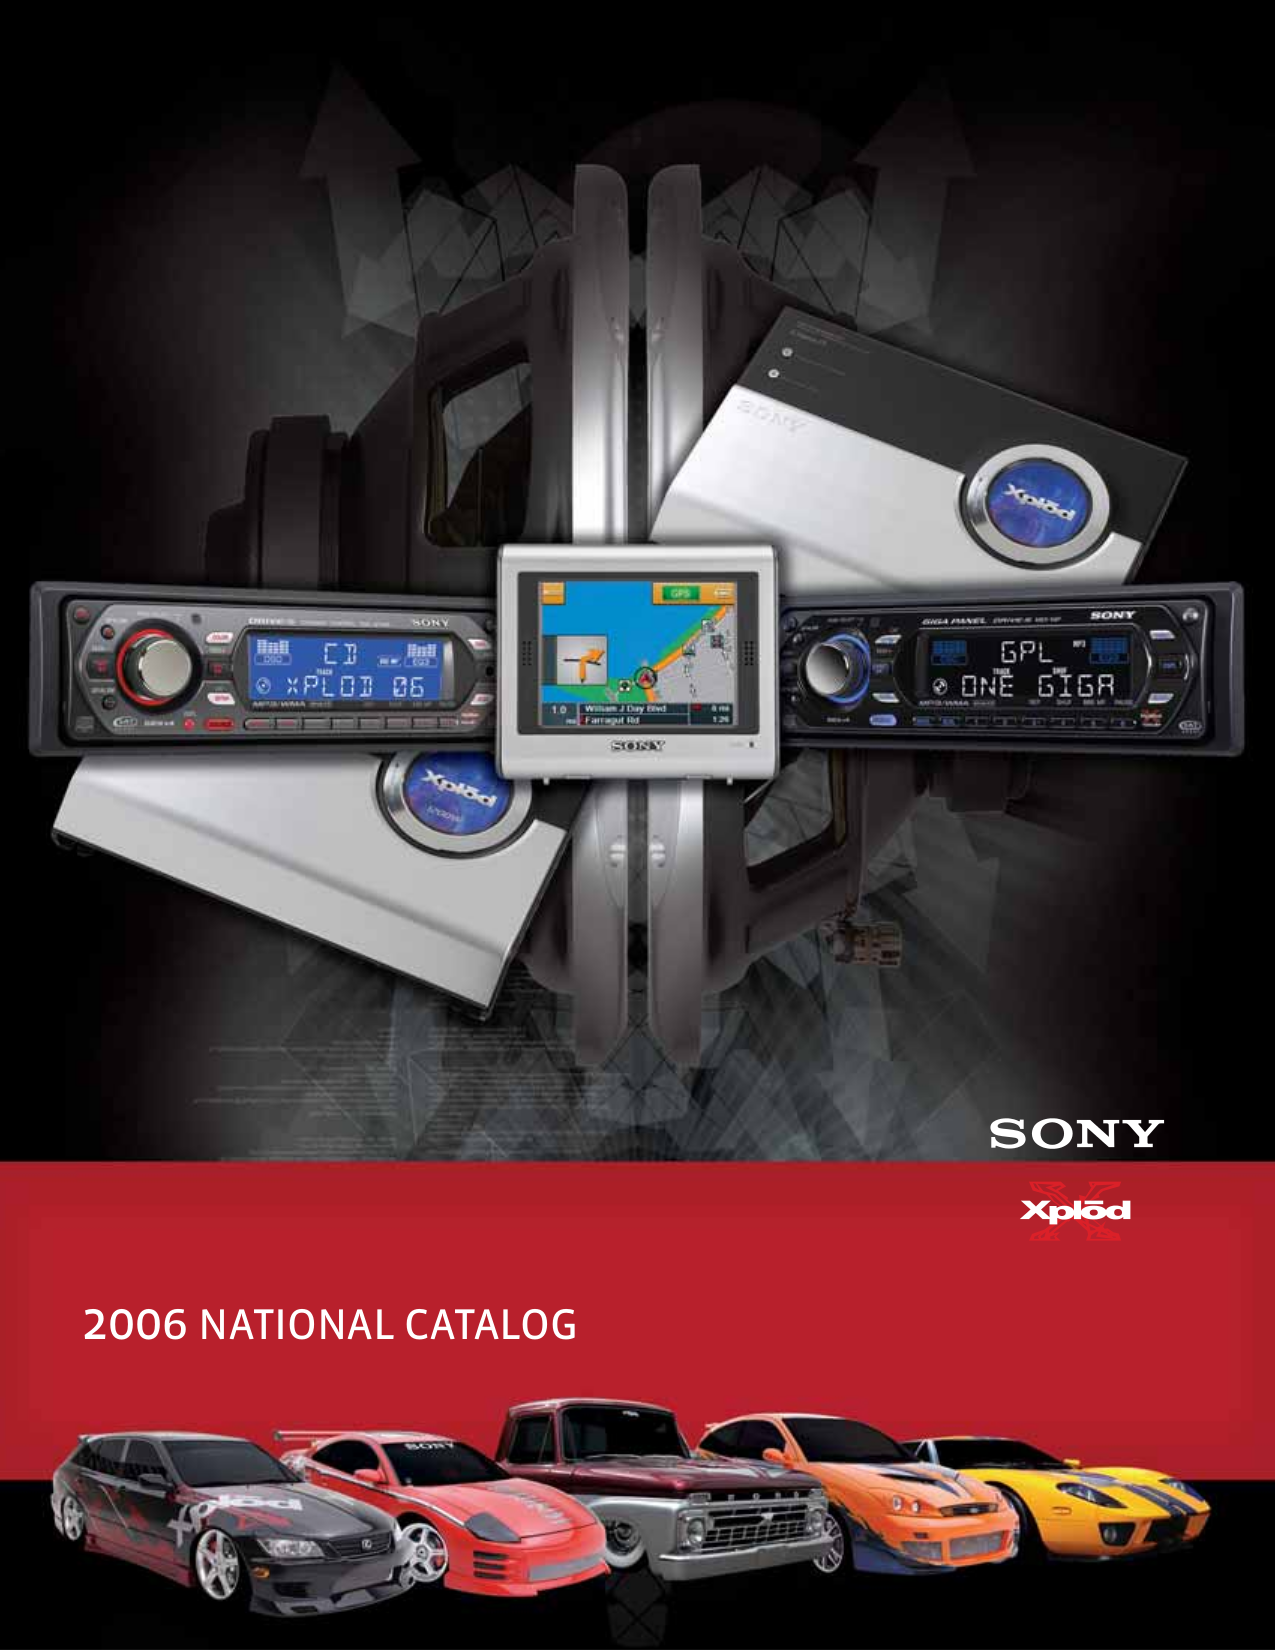 Sony Xplod Cdx Gt200 Manual Wiring Diagram 52wx4 Pdf For Car Receiver